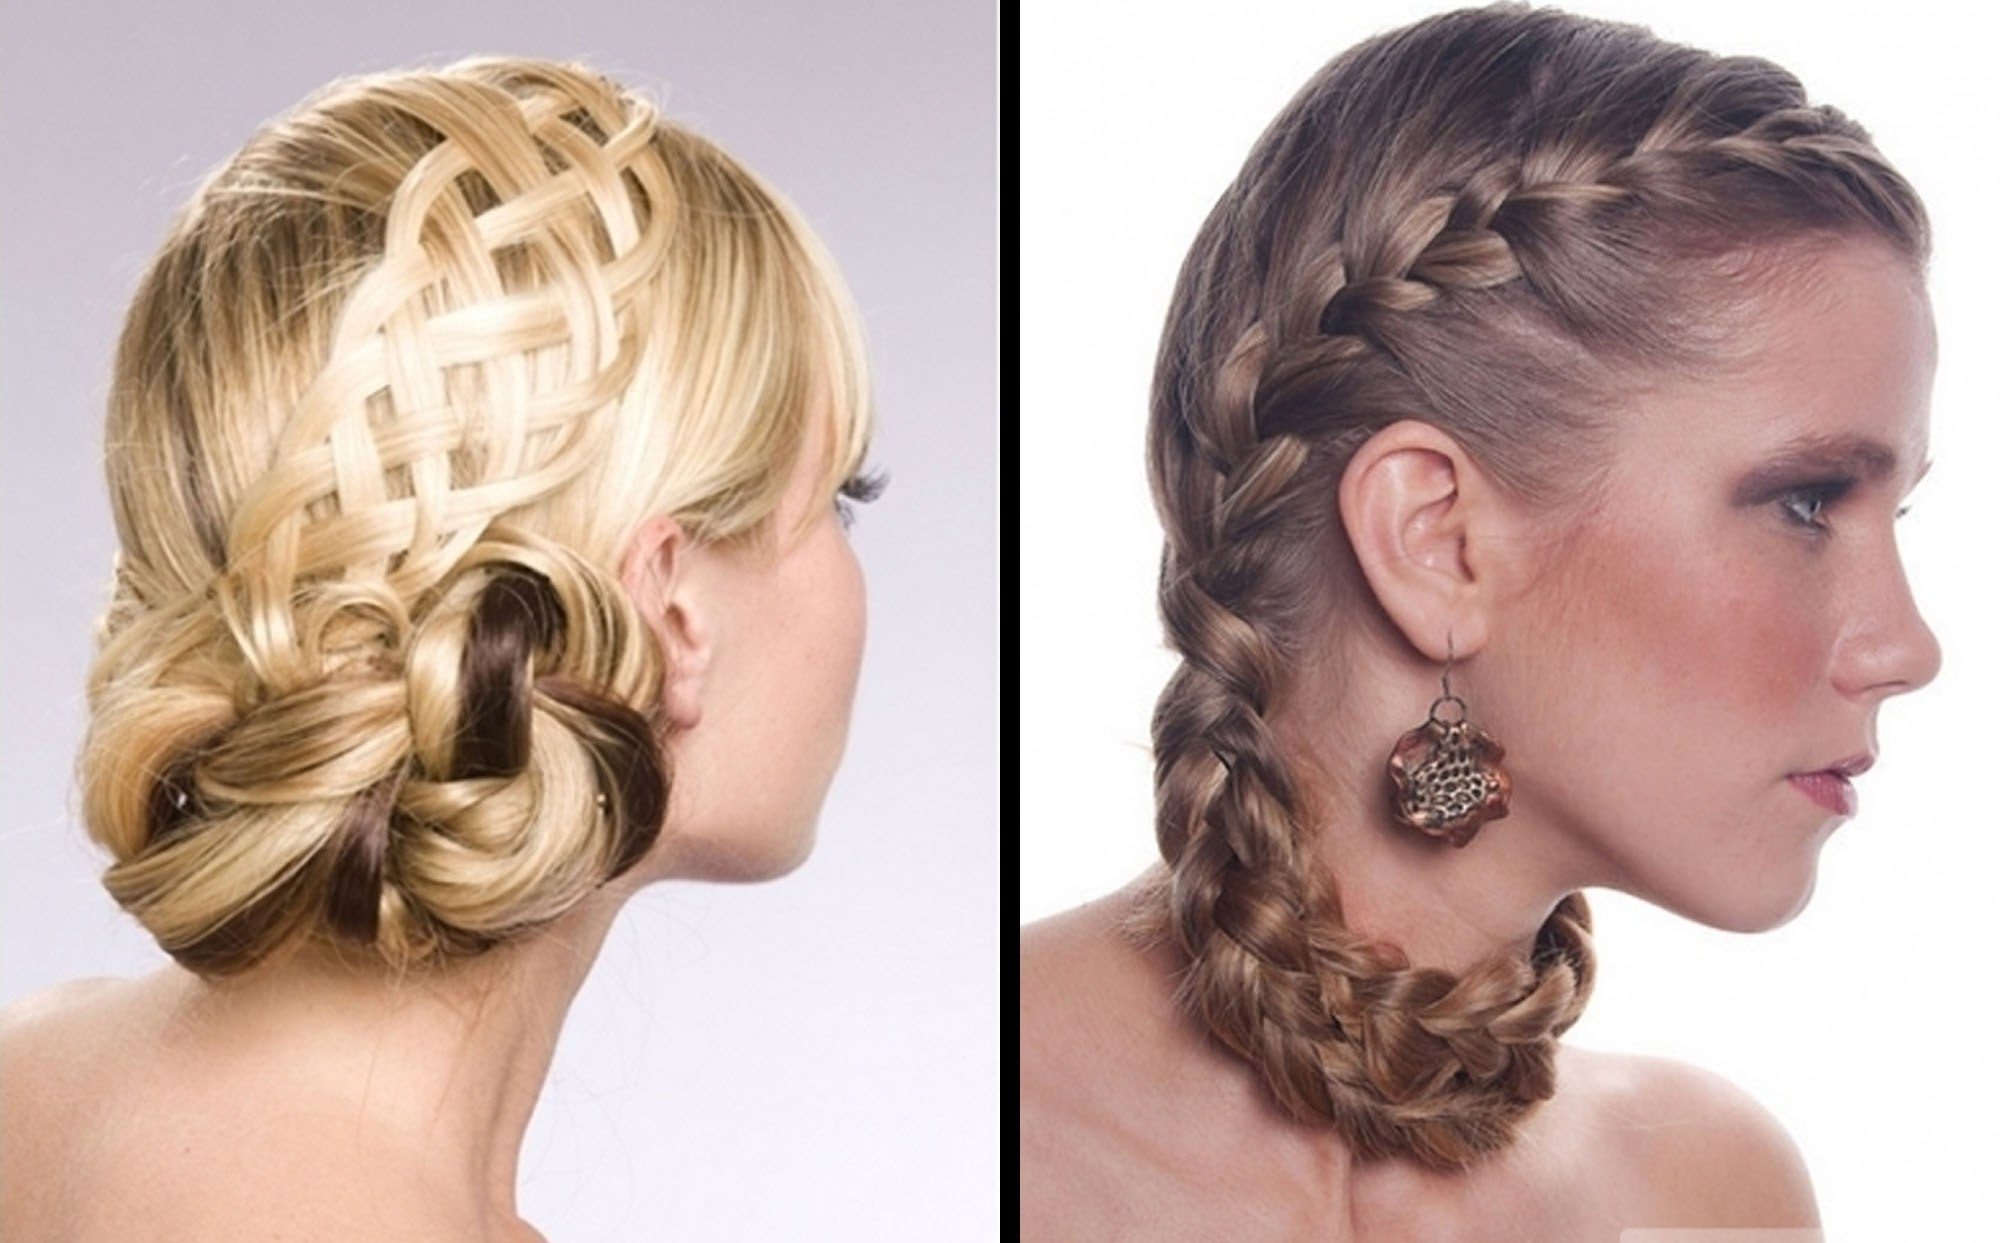 Hairstyles Prom For Short Hair Easy | Medium Hair Styles Ideas – 35491 Within Easy Updo Hairstyles For Shoulder Length Hair (View 8 of 15)